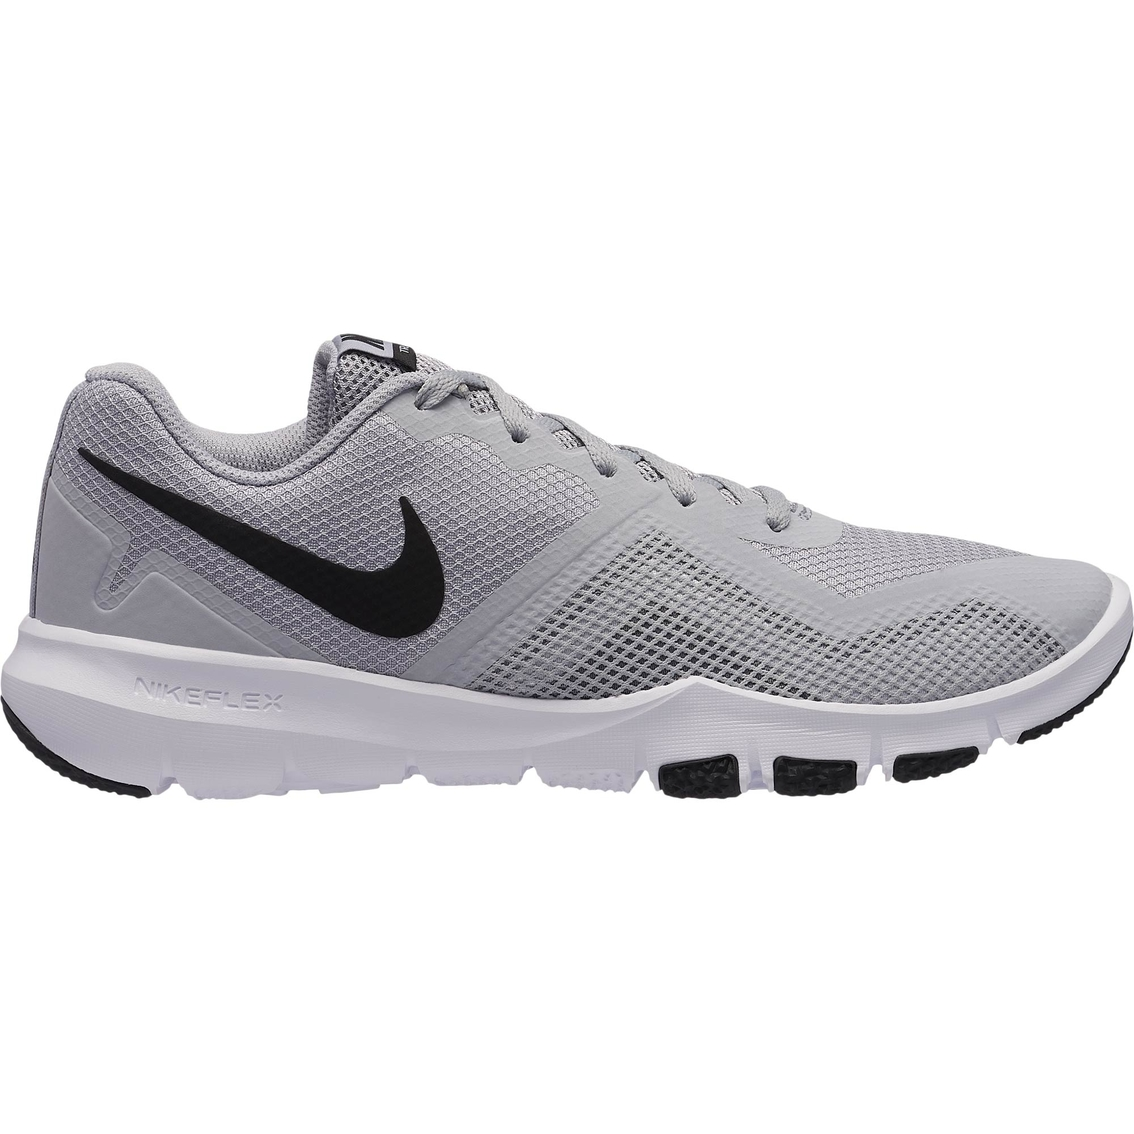 e0d77c2a6c6d Nike Men s Flex Control Ii Training Shoes